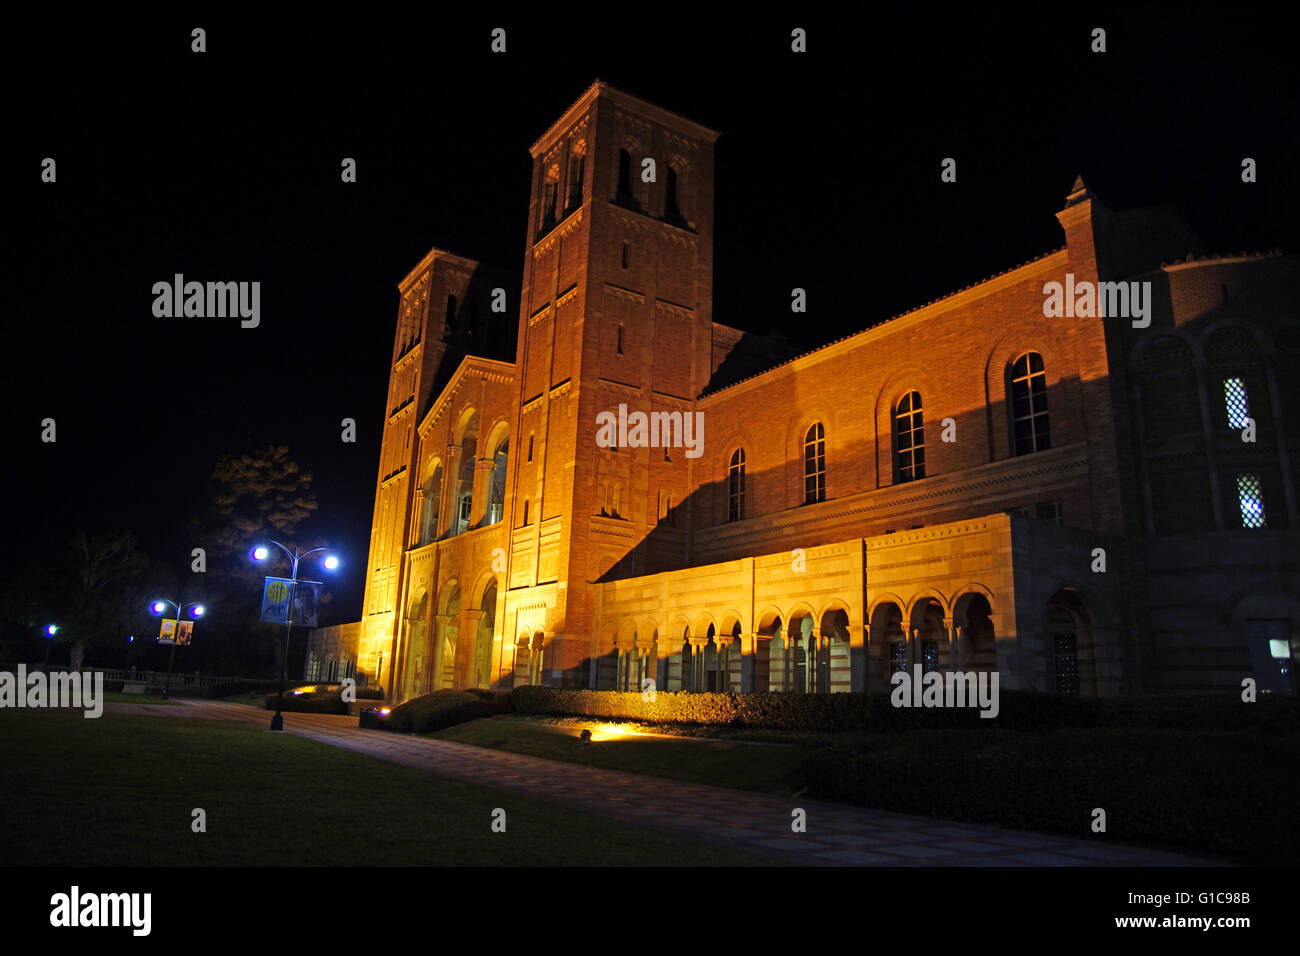 Building with large towers and walkway at night at UCLA campus with up-lighting - Stock Image